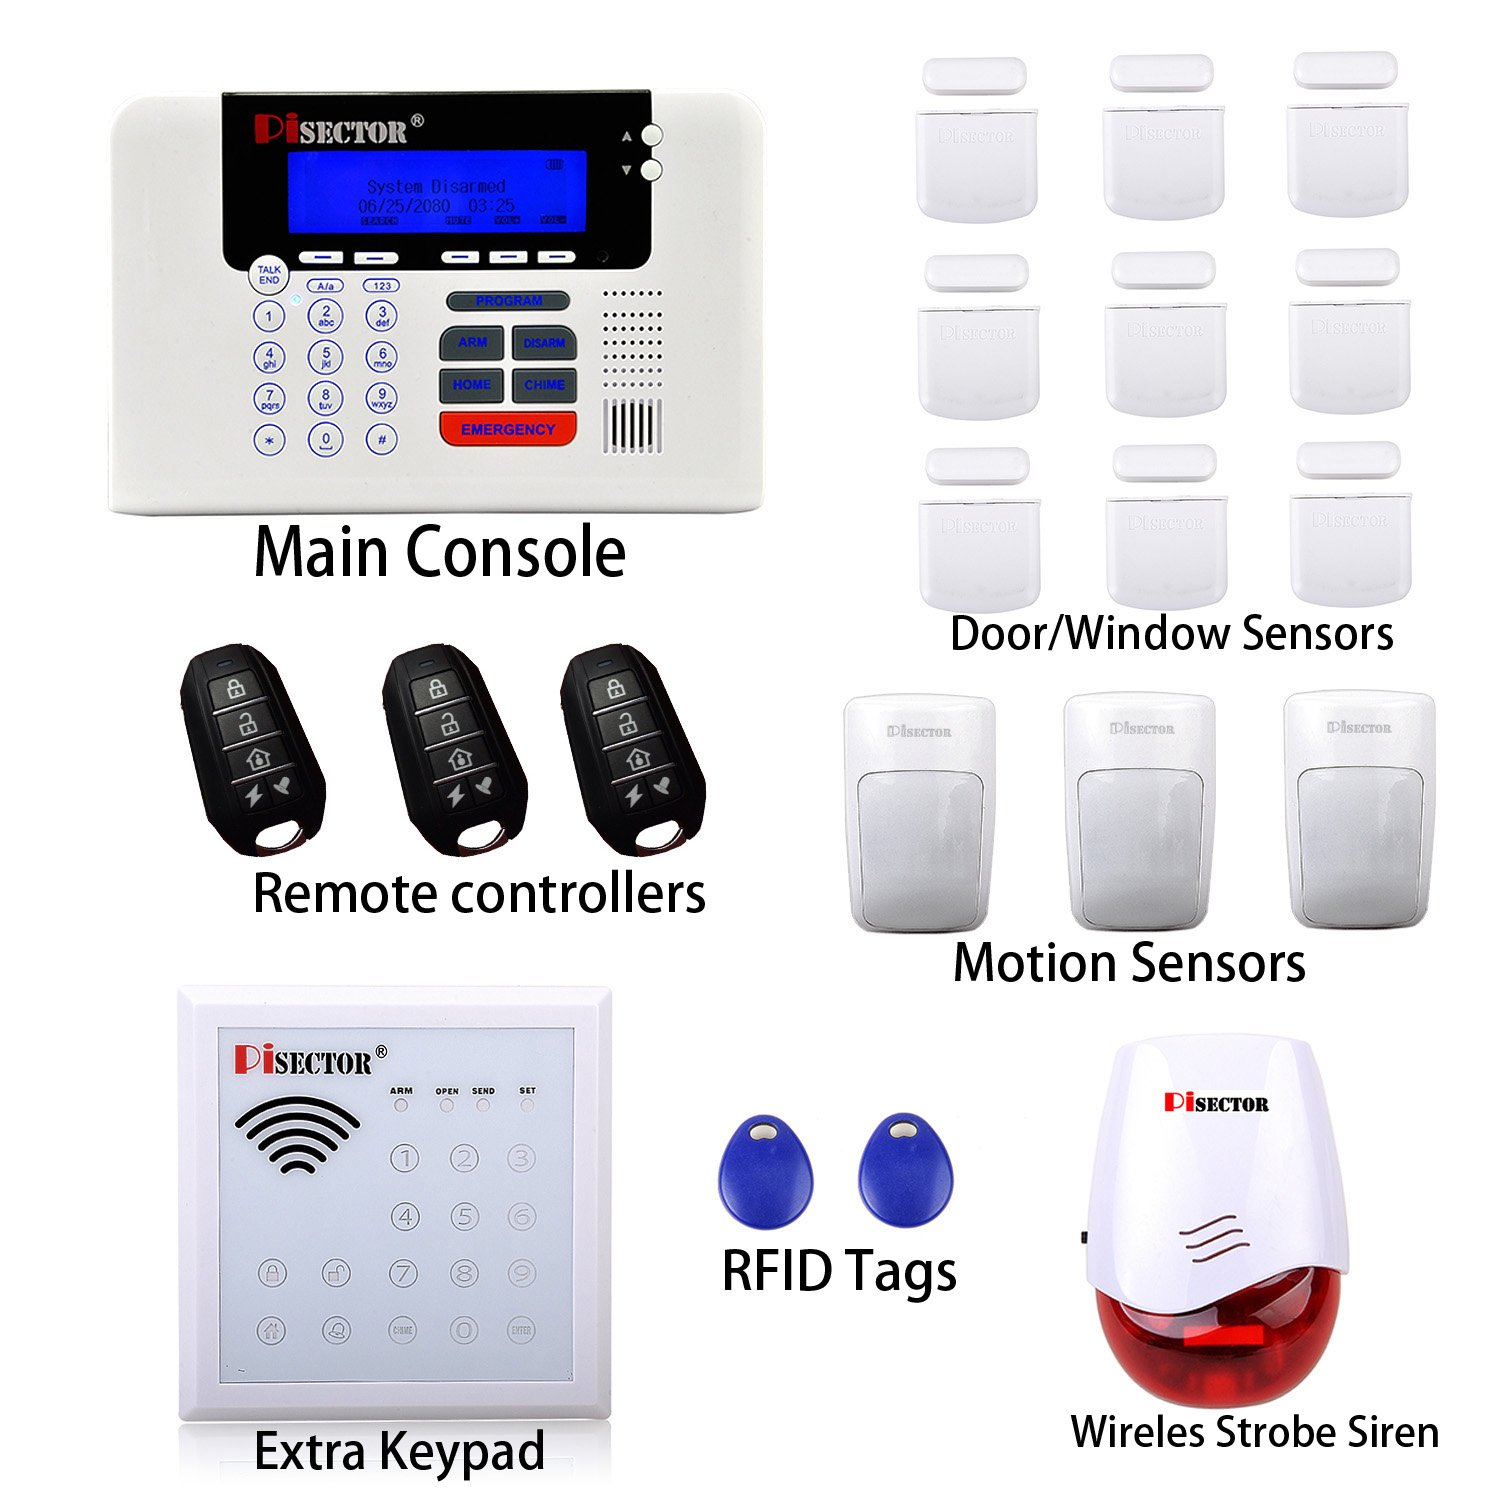 amazoncom pisector 3g4g cellular u0026 landline all in one wireless security alarm system diy kit with dual network for double protection